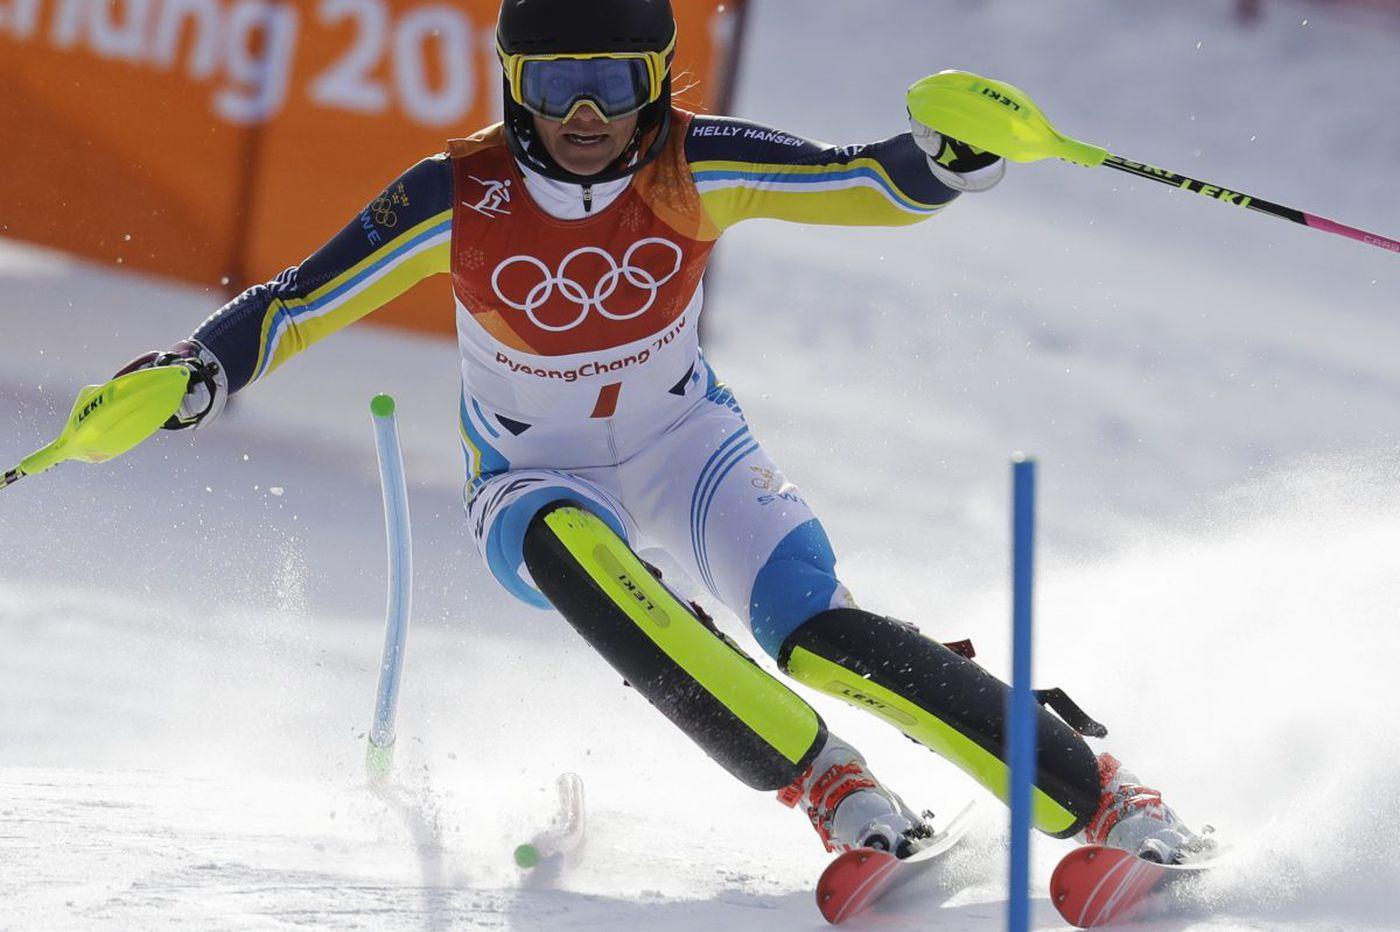 Winter Olympics demonstrate why balance, flexibility are so important